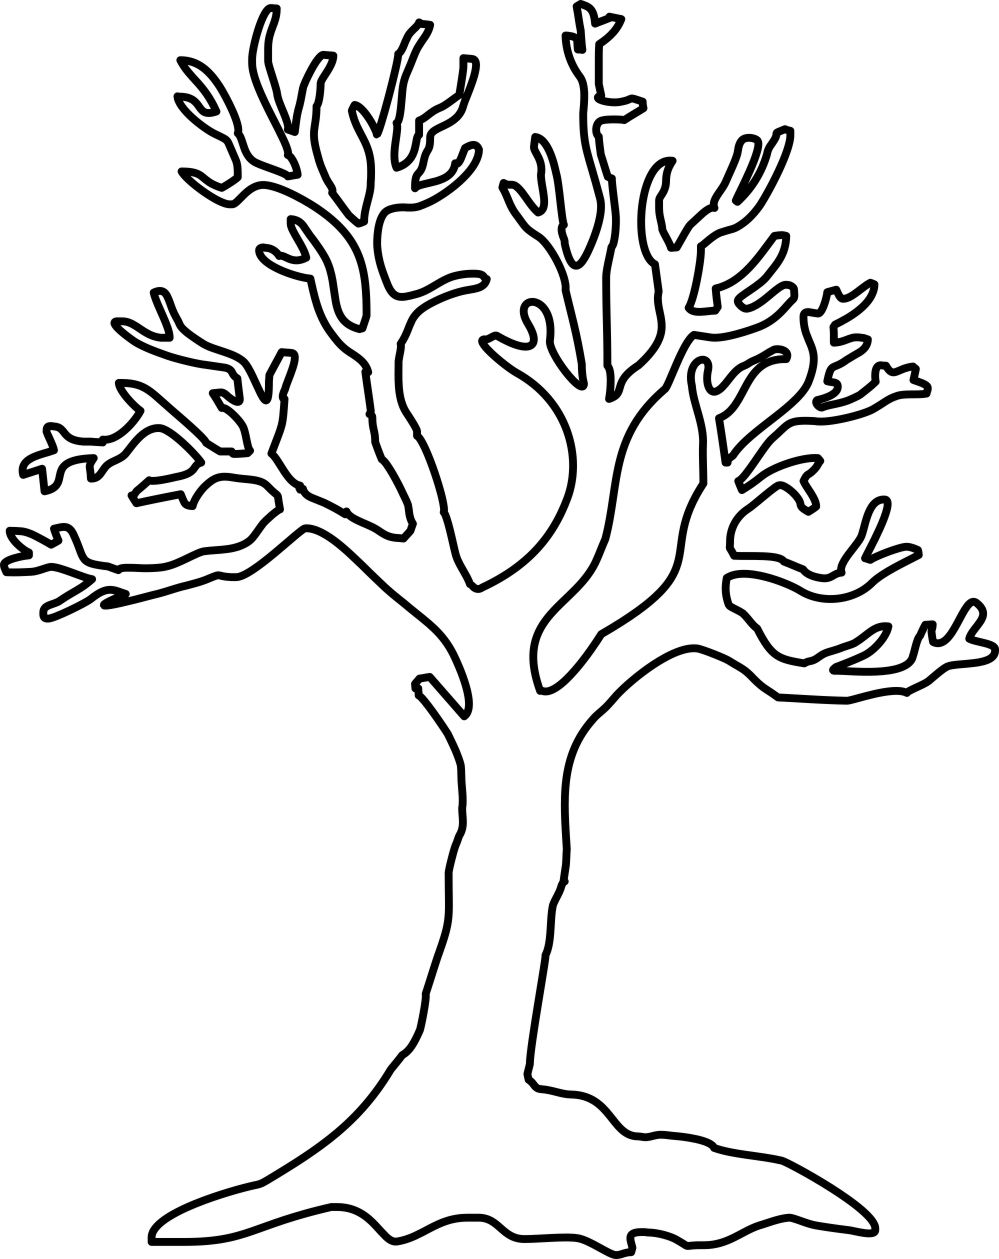 trees of life drawing Google Search Family tree